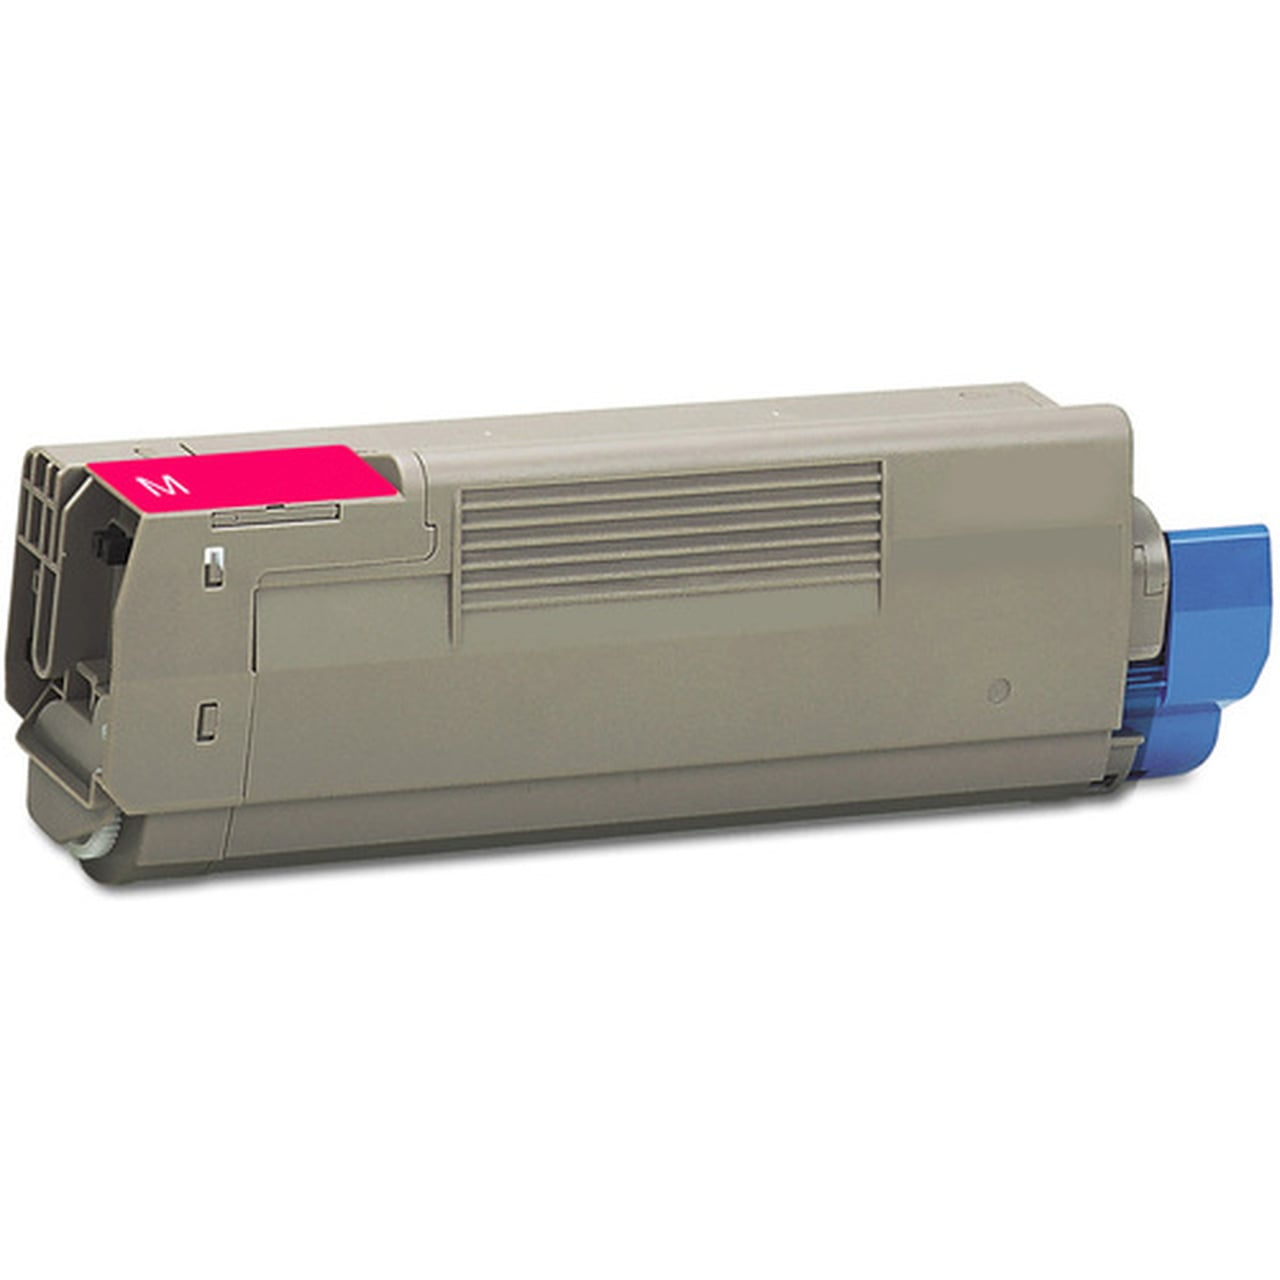 44315302 Toner Cartridge - Okidata Remanufactured (Magenta)